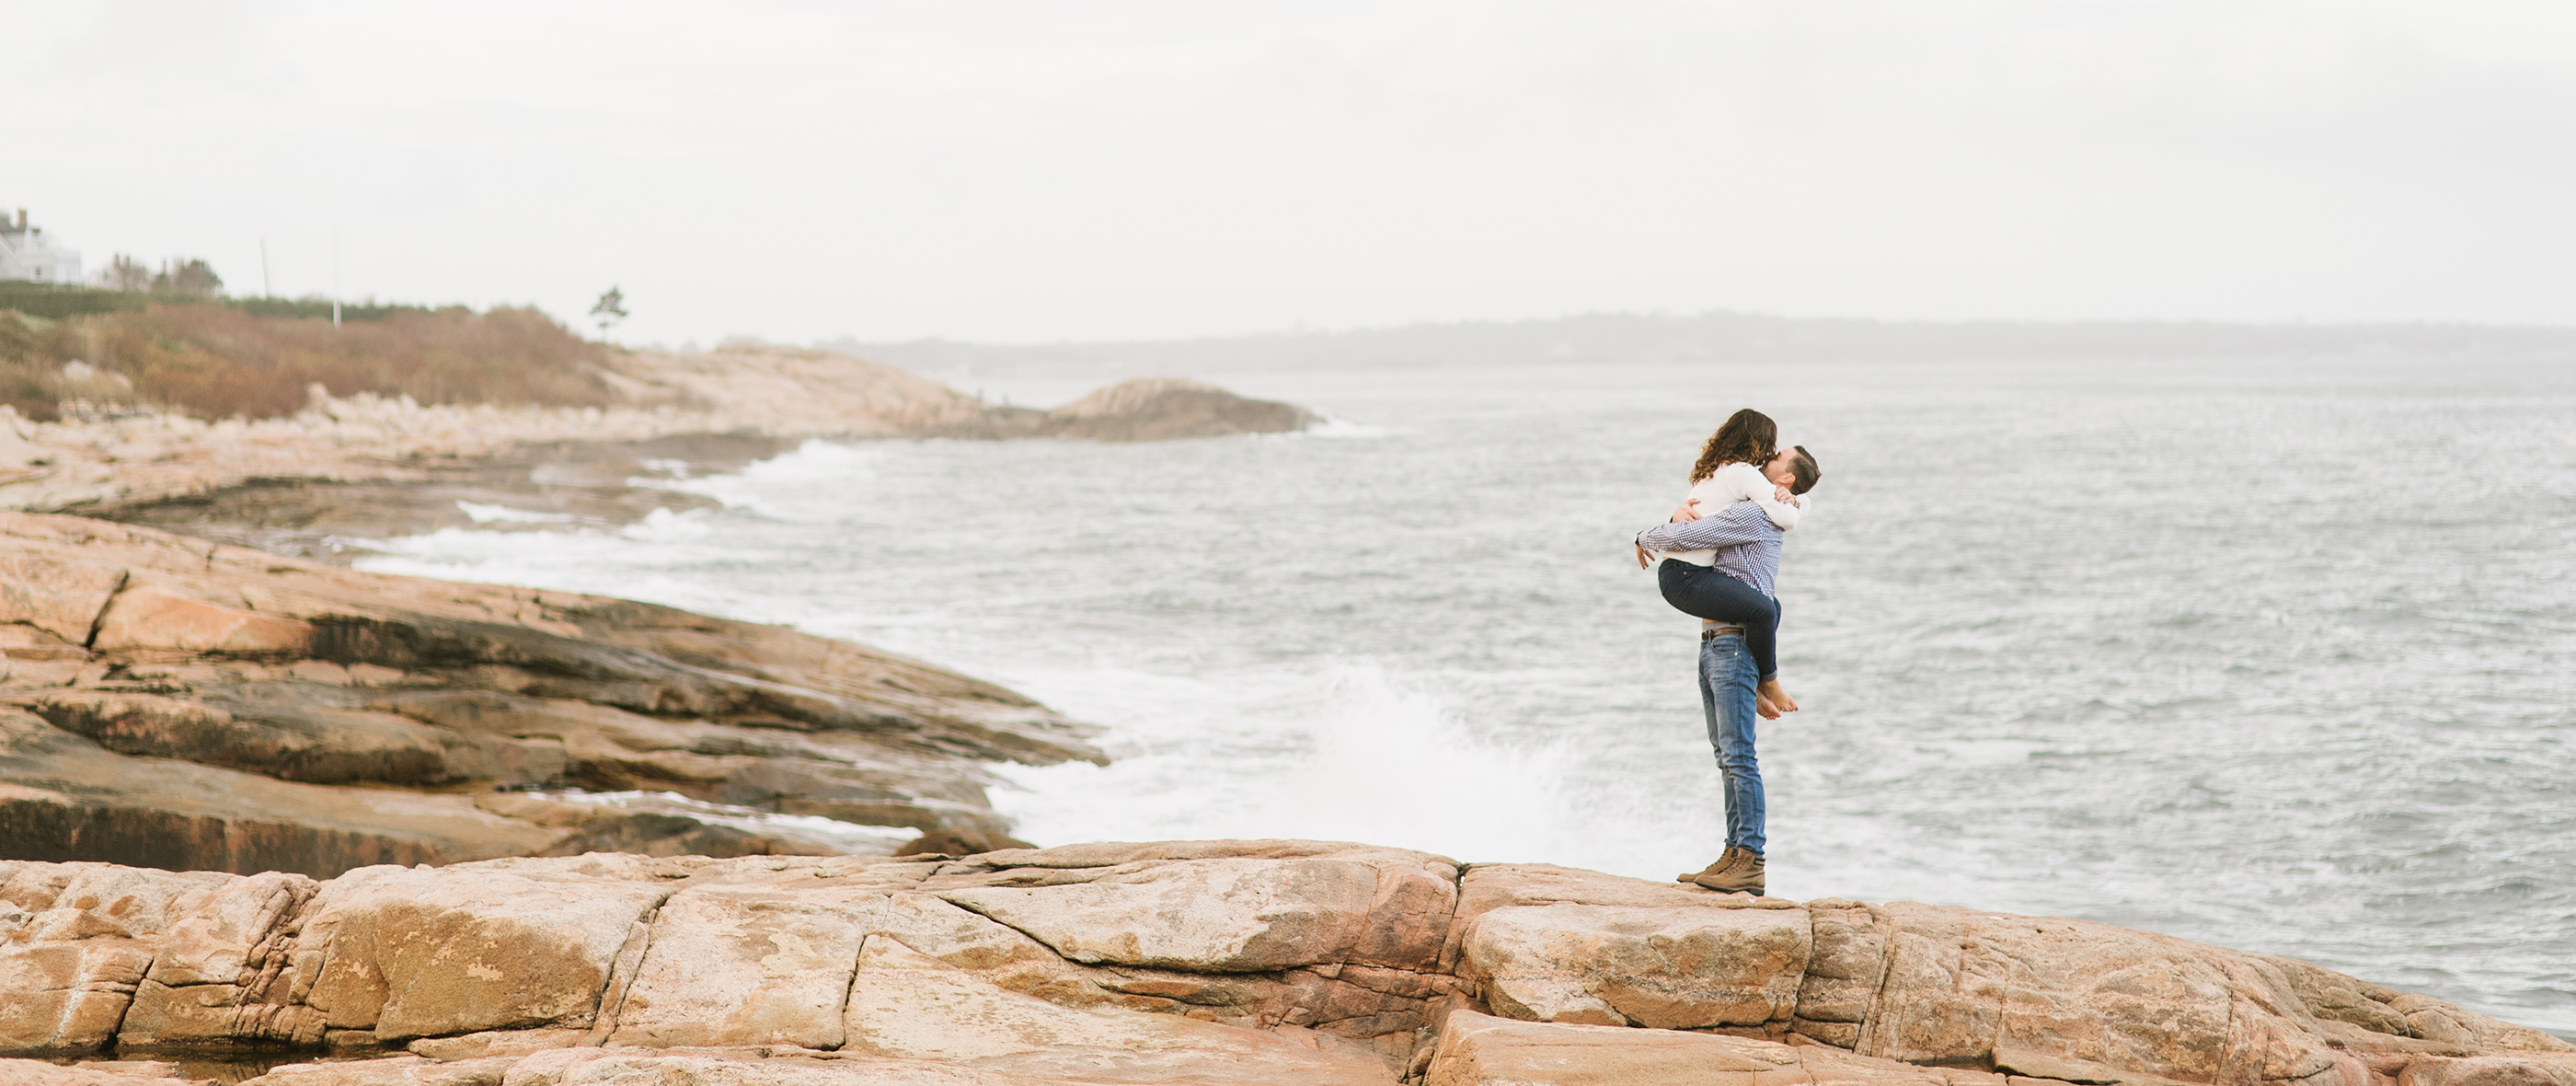 STEVEN + KRYSTINA | NARRAGANSETT ENGAGEMENT SESSION